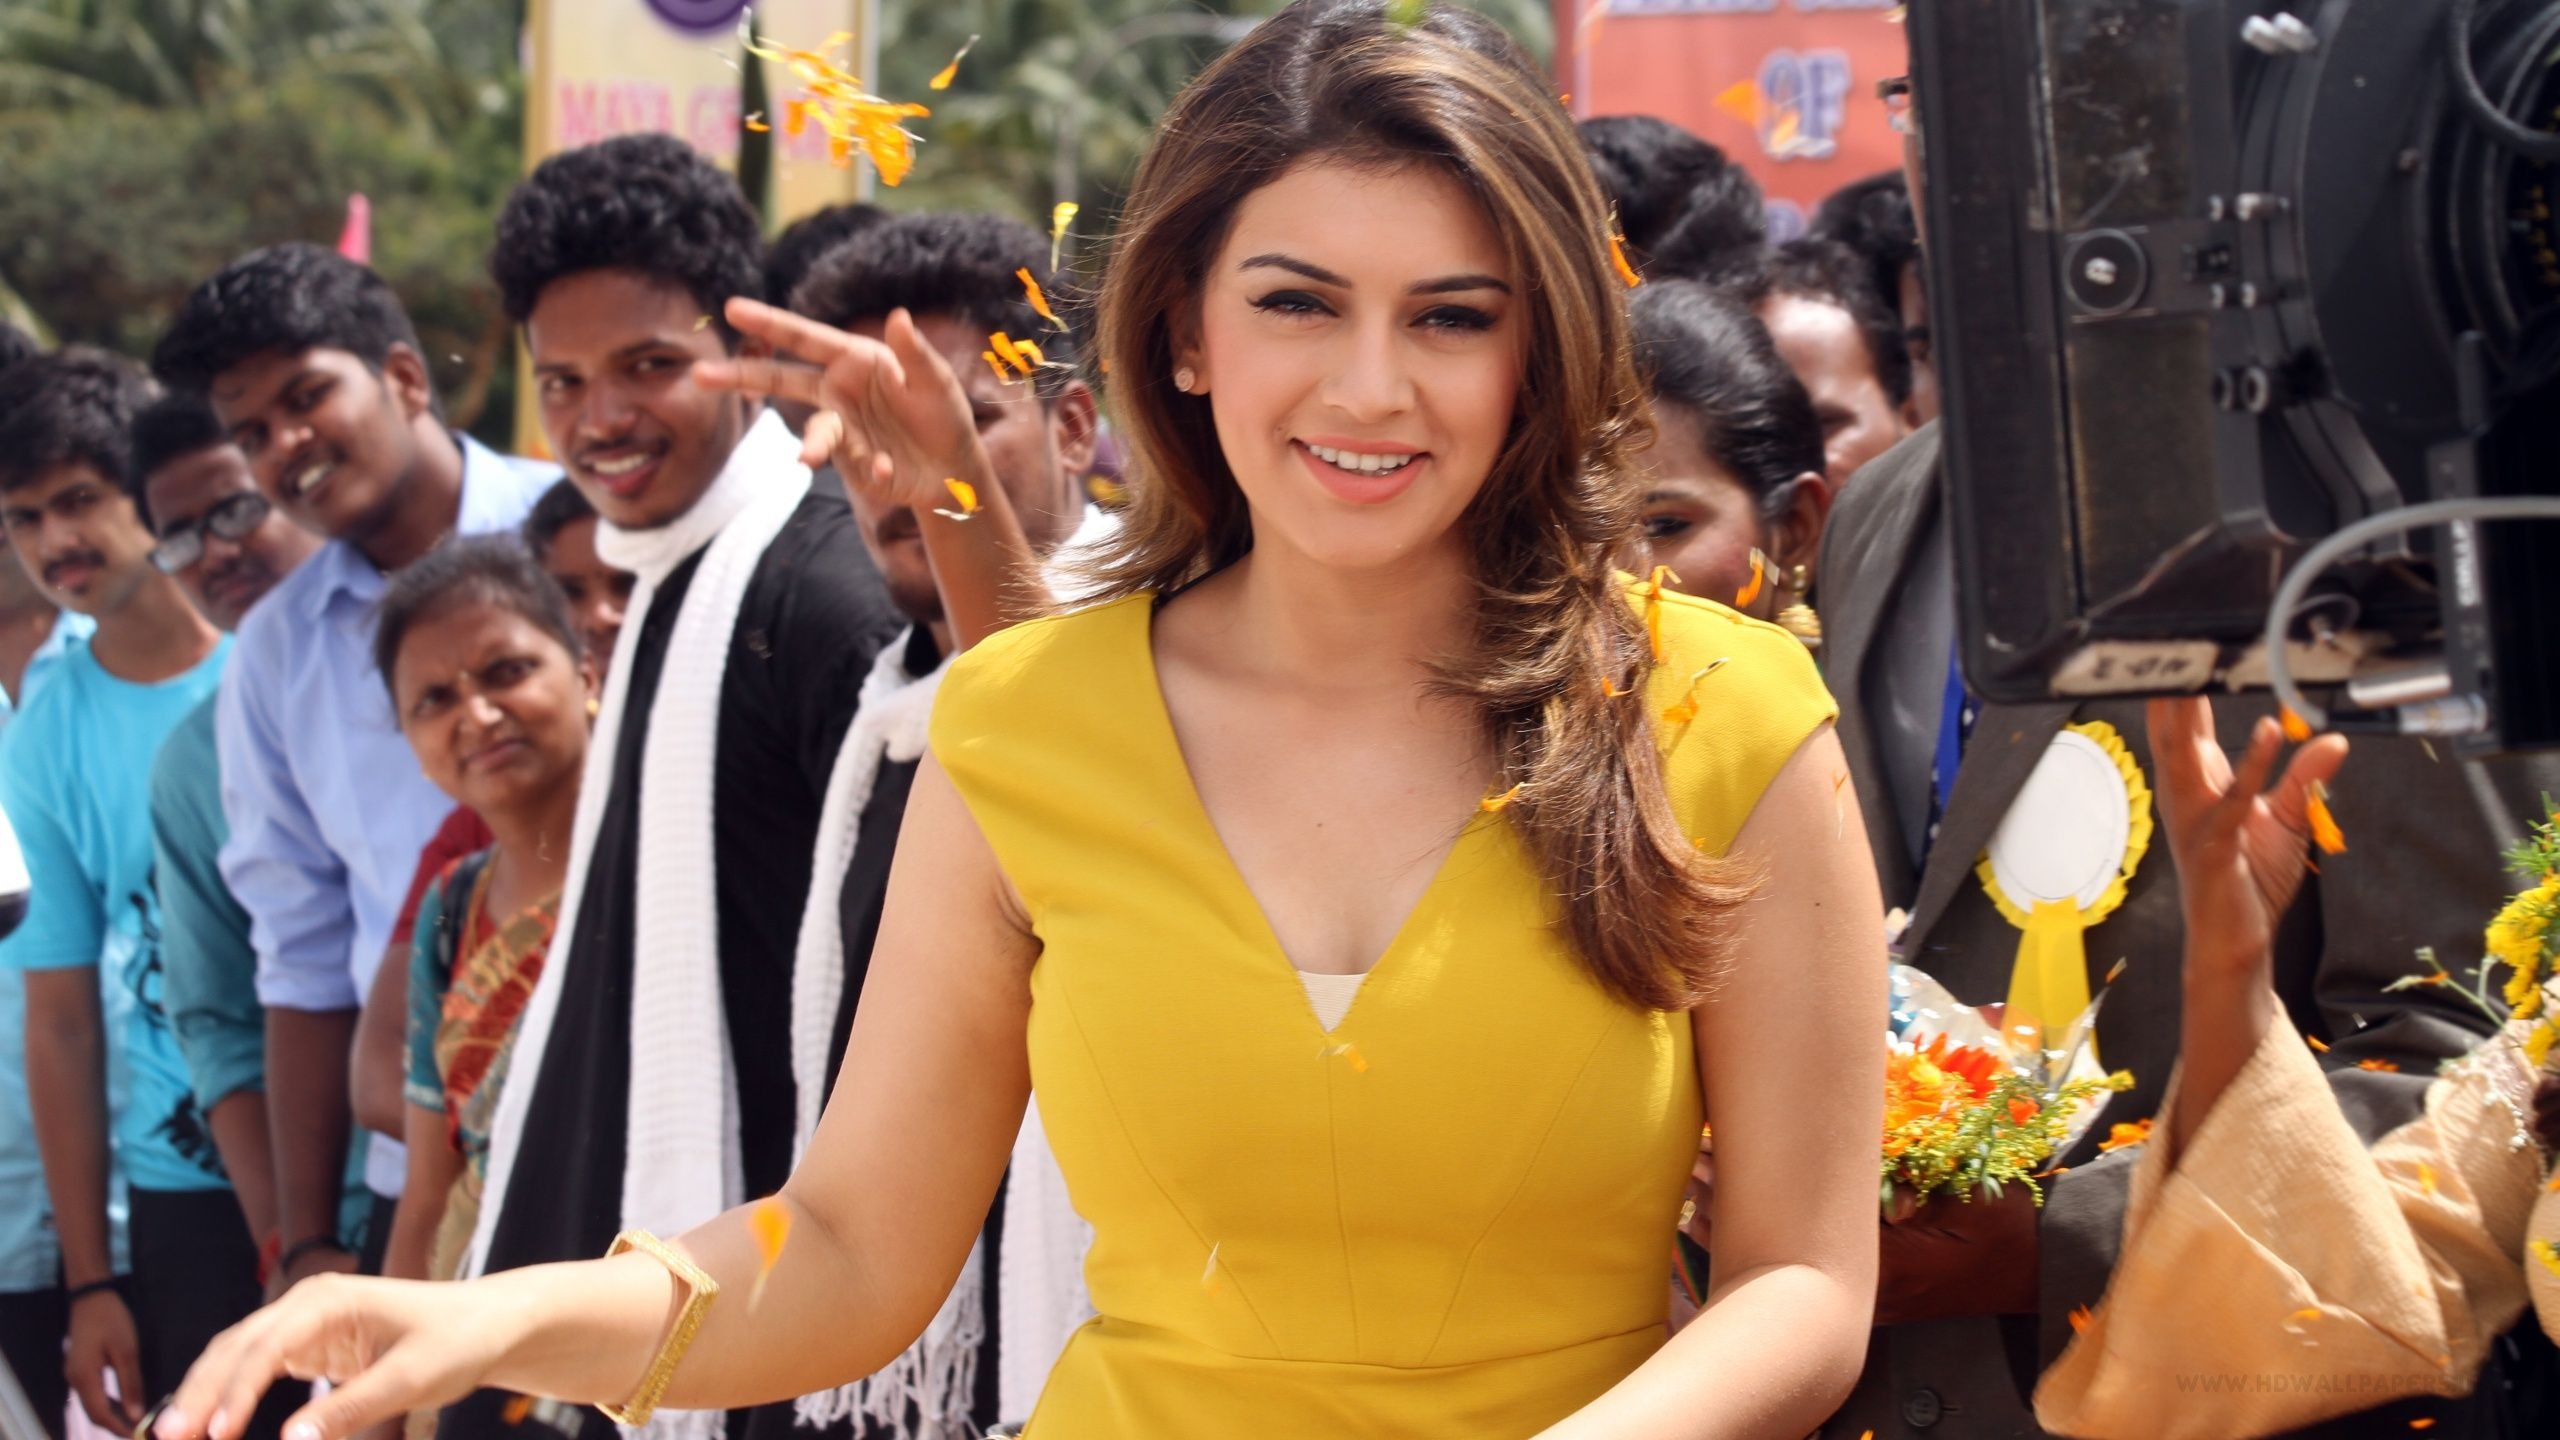 hansika Full HD wallpapers search